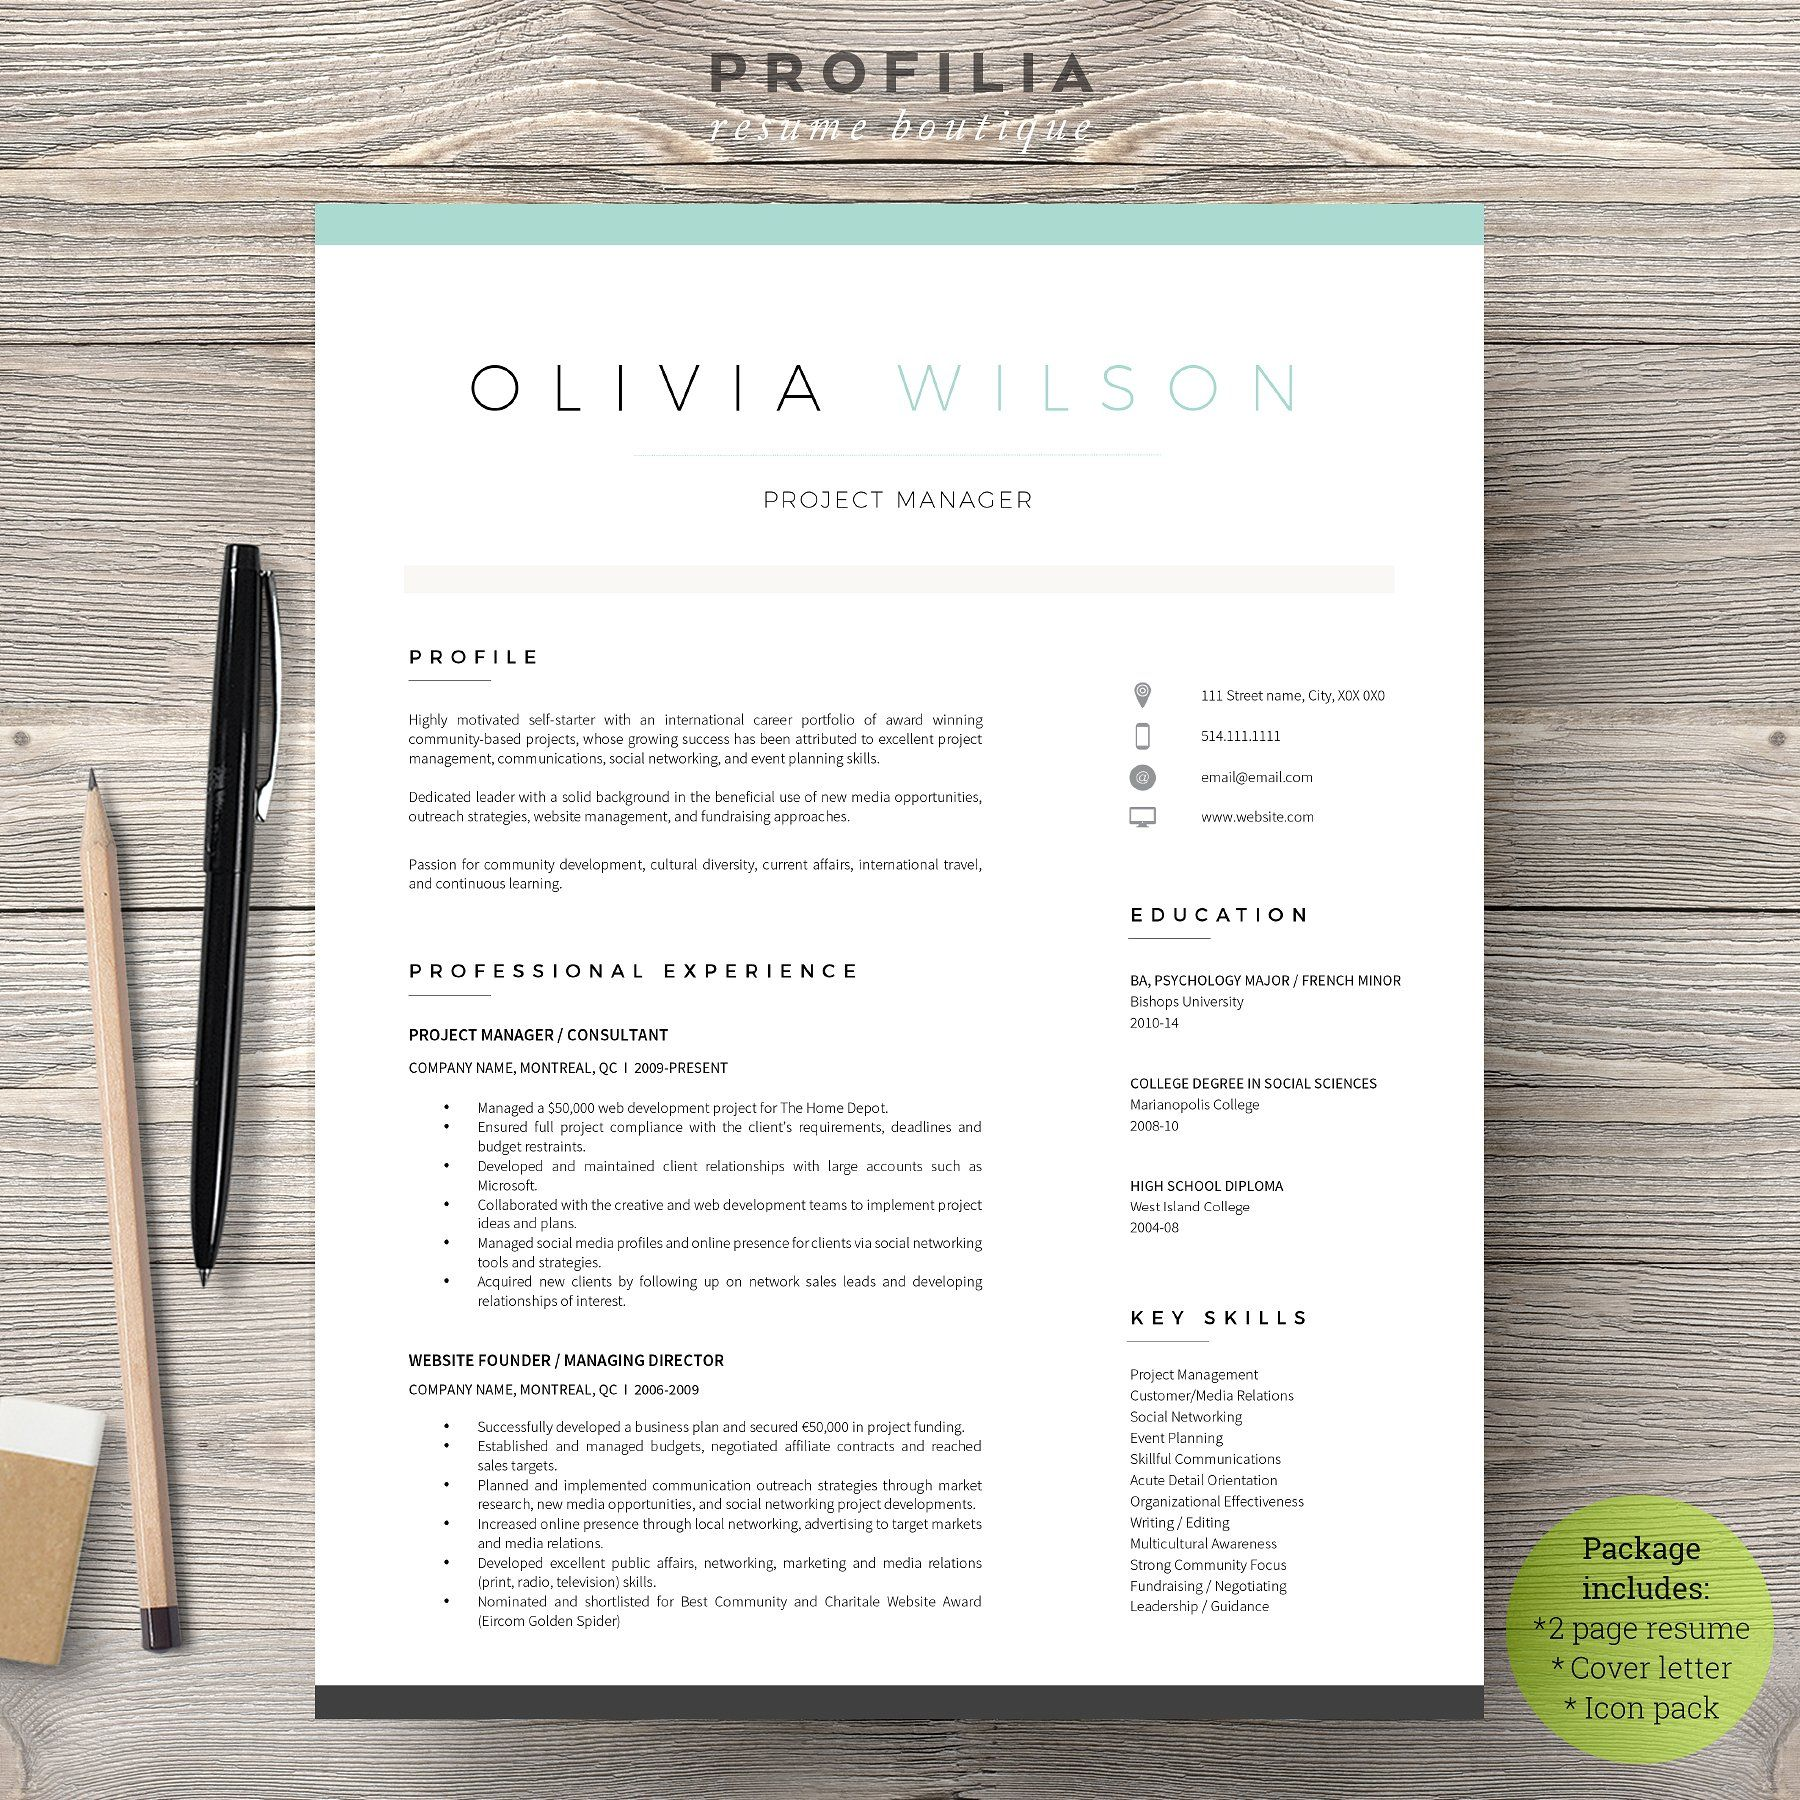 Word Resume & Cover Letter Template by Profilia_Resume on ...